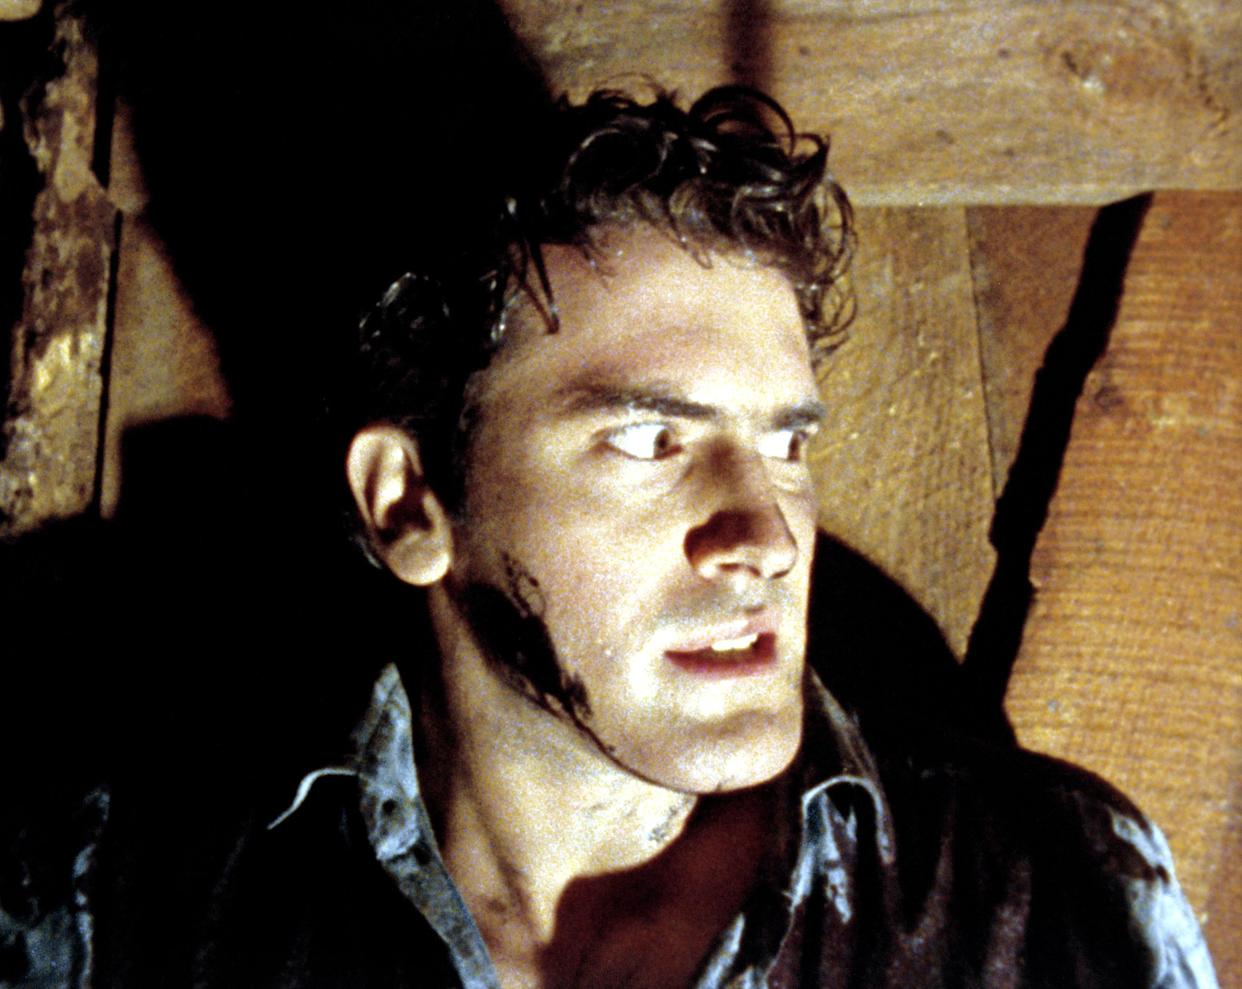 Bruce Campbell made his feature film debut in Sam Raimi's 1981 horror classic, The Evil Dead, which celebrates its 40th anniversary this year. (Photo: New Line/Courtesy Everett Collection)